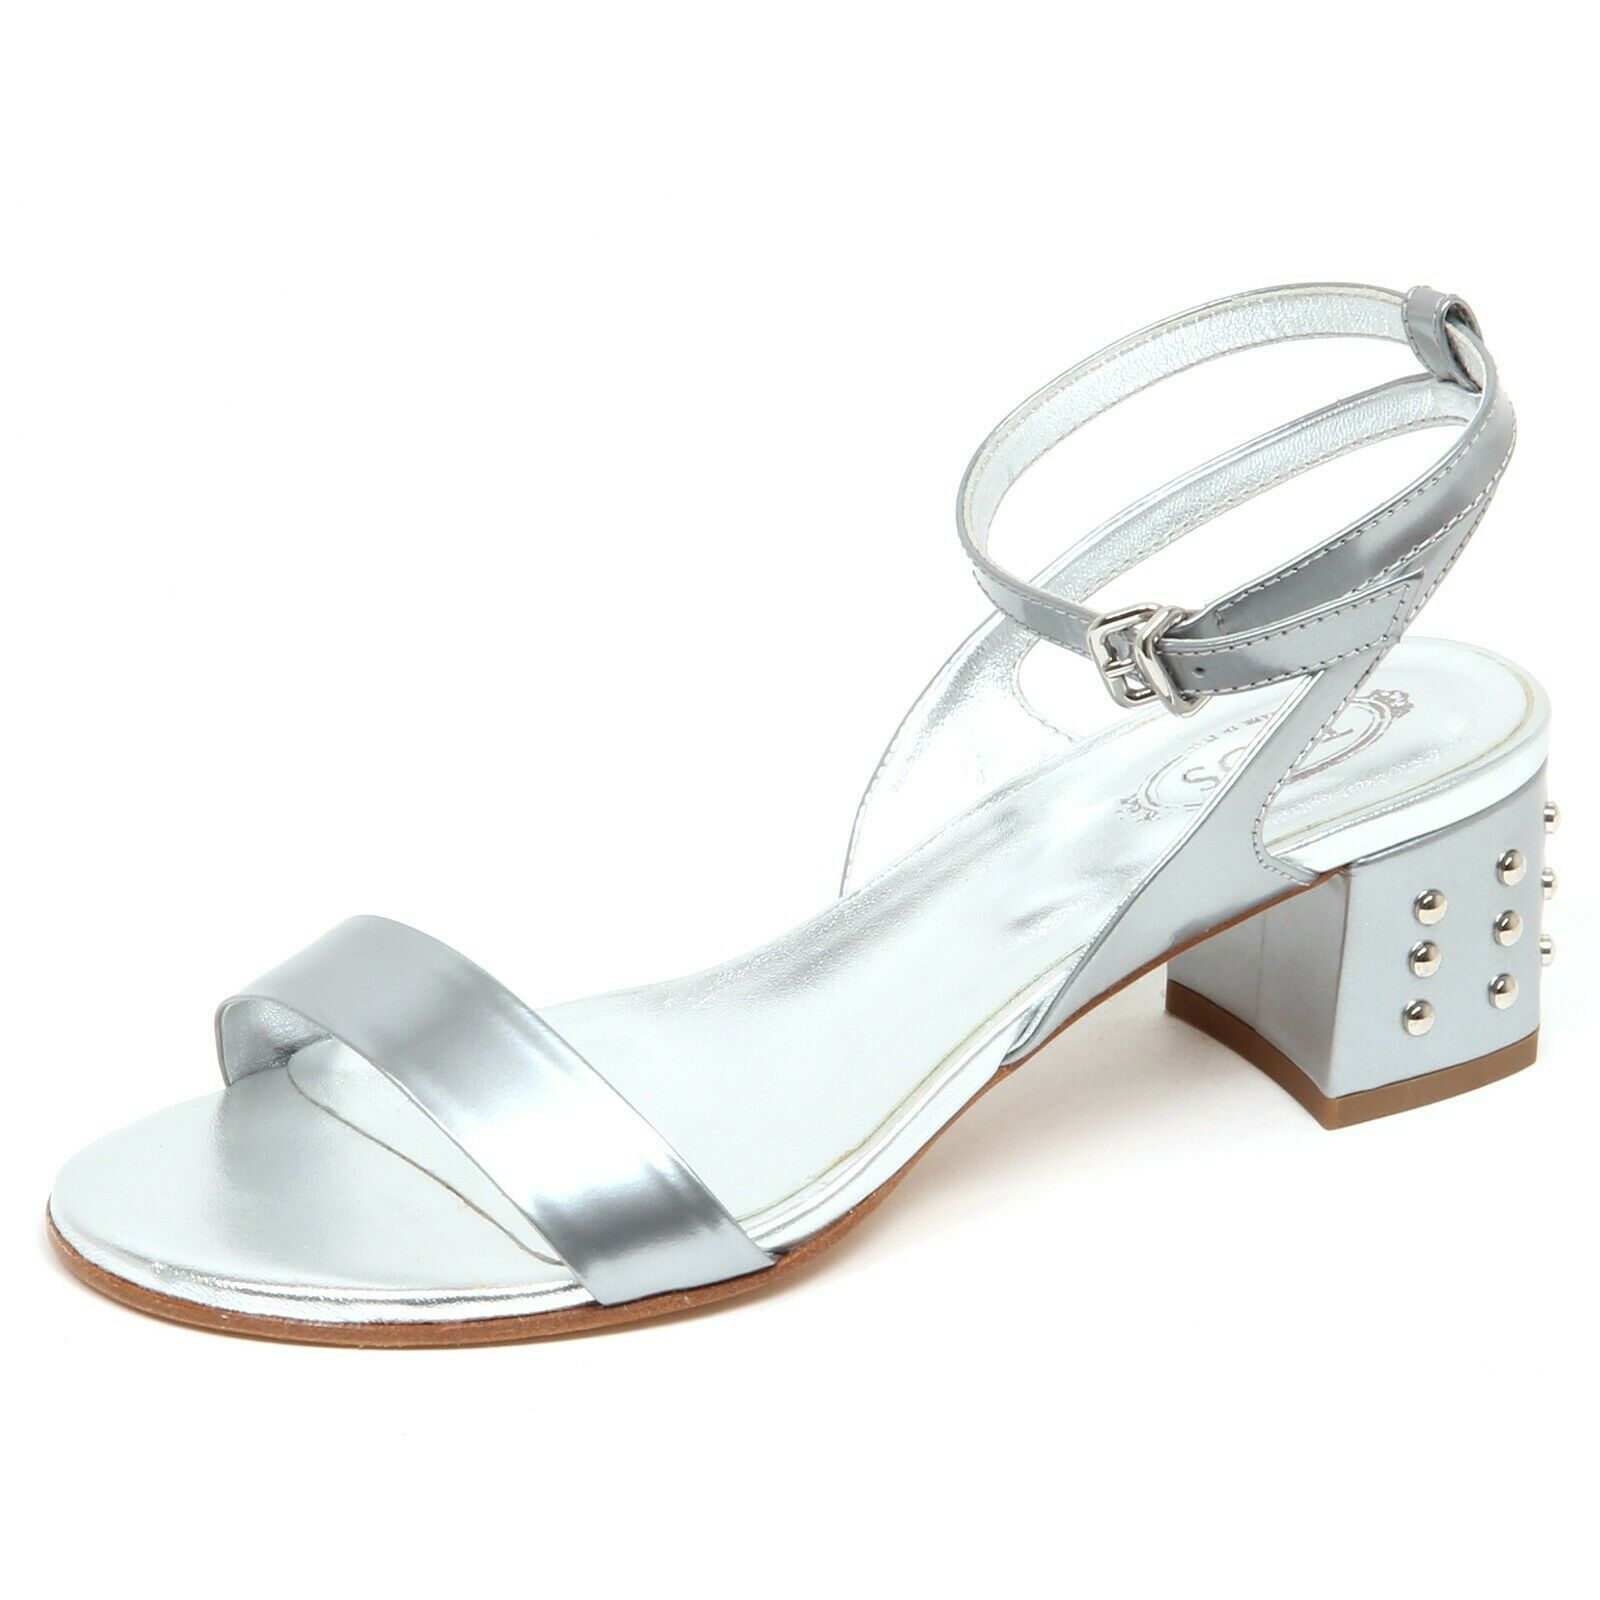 F3316 Sandalo mujer Plata Tod'S zapatos clavos zapato zapato zapato mujer  Precio por piso